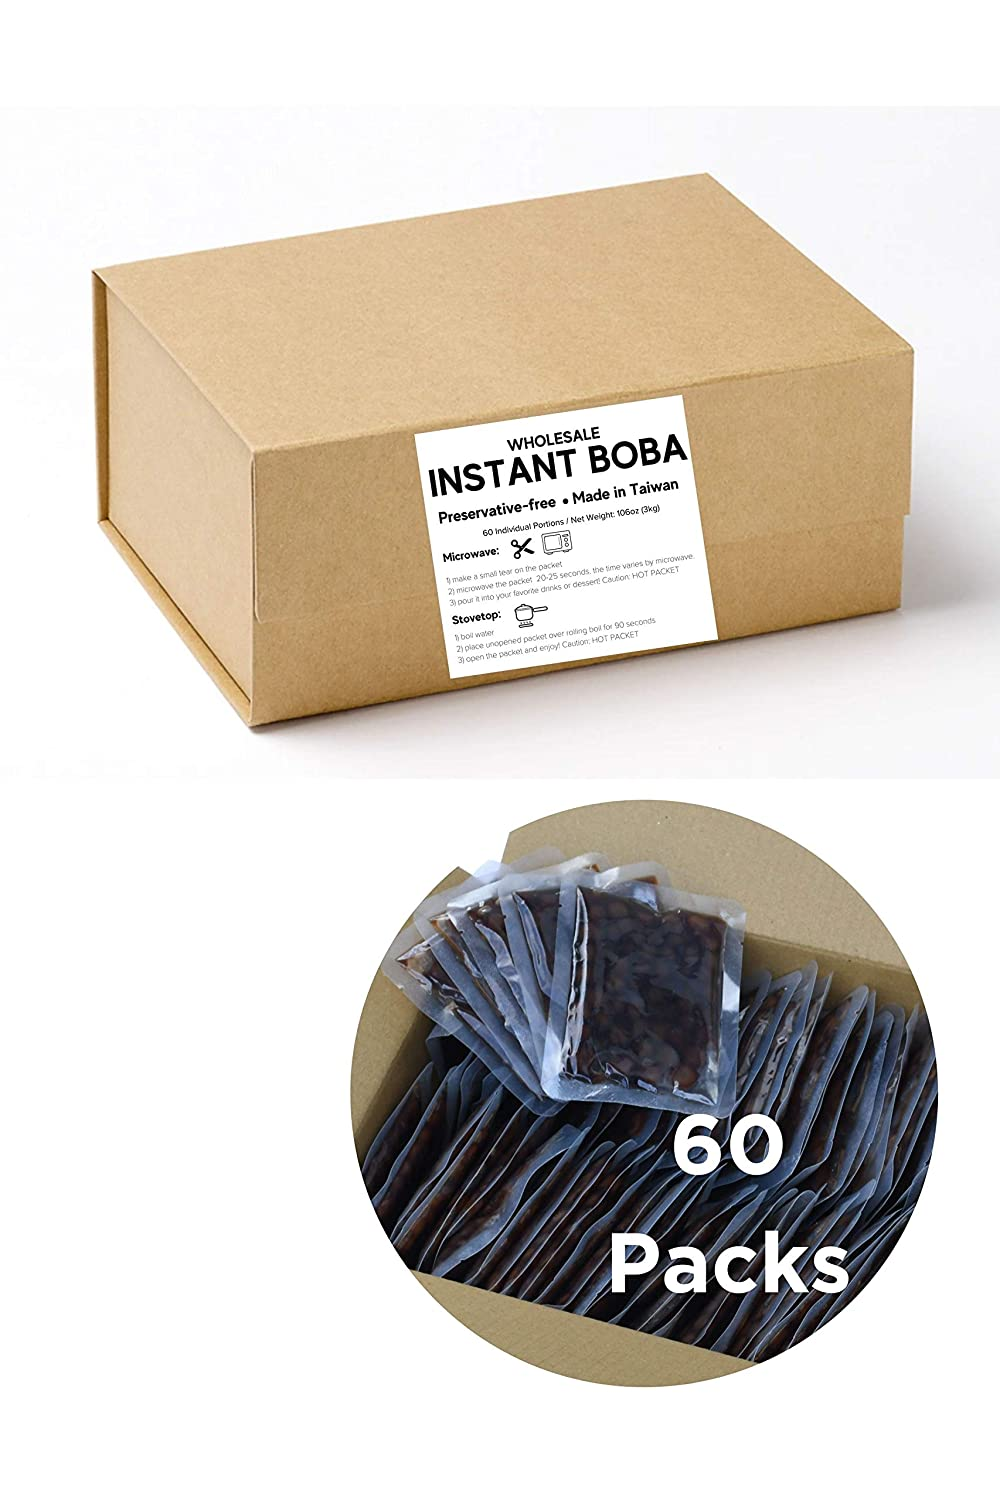 Buy Wholesale Instant Boba 20 Packets   NET WEIGHT 20.20 LB 20 KG ...